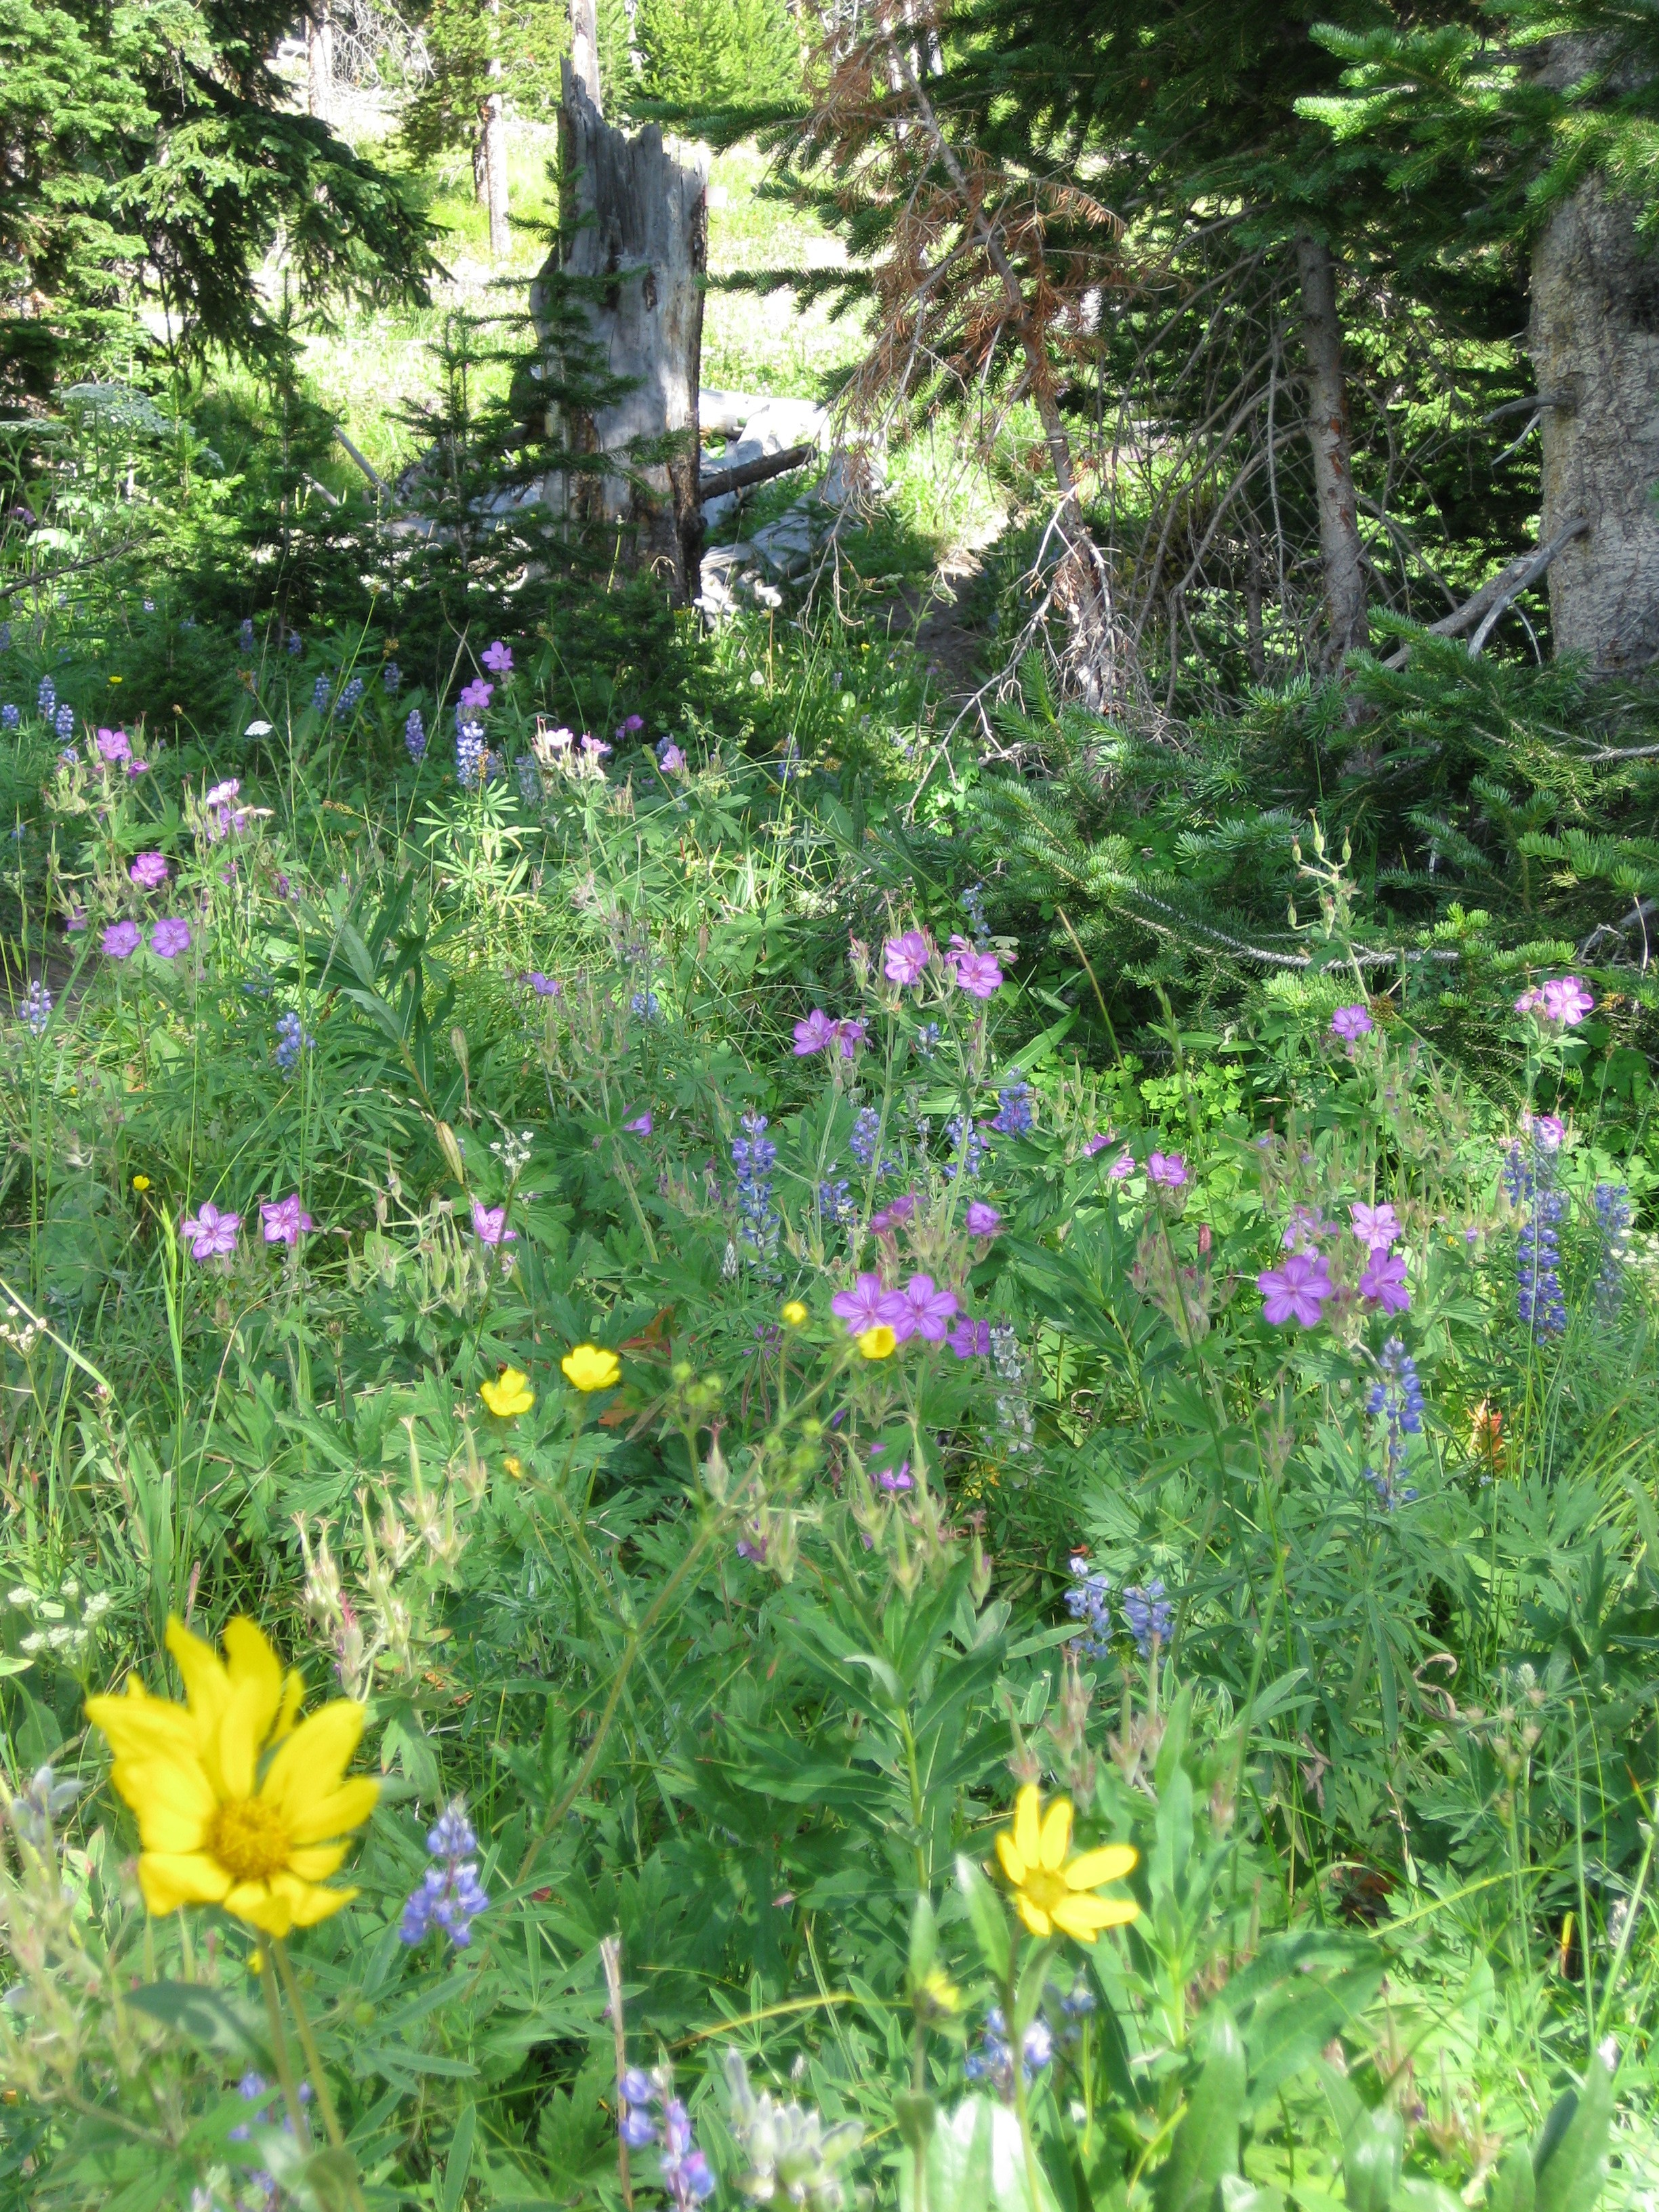 Wildflowers along the way